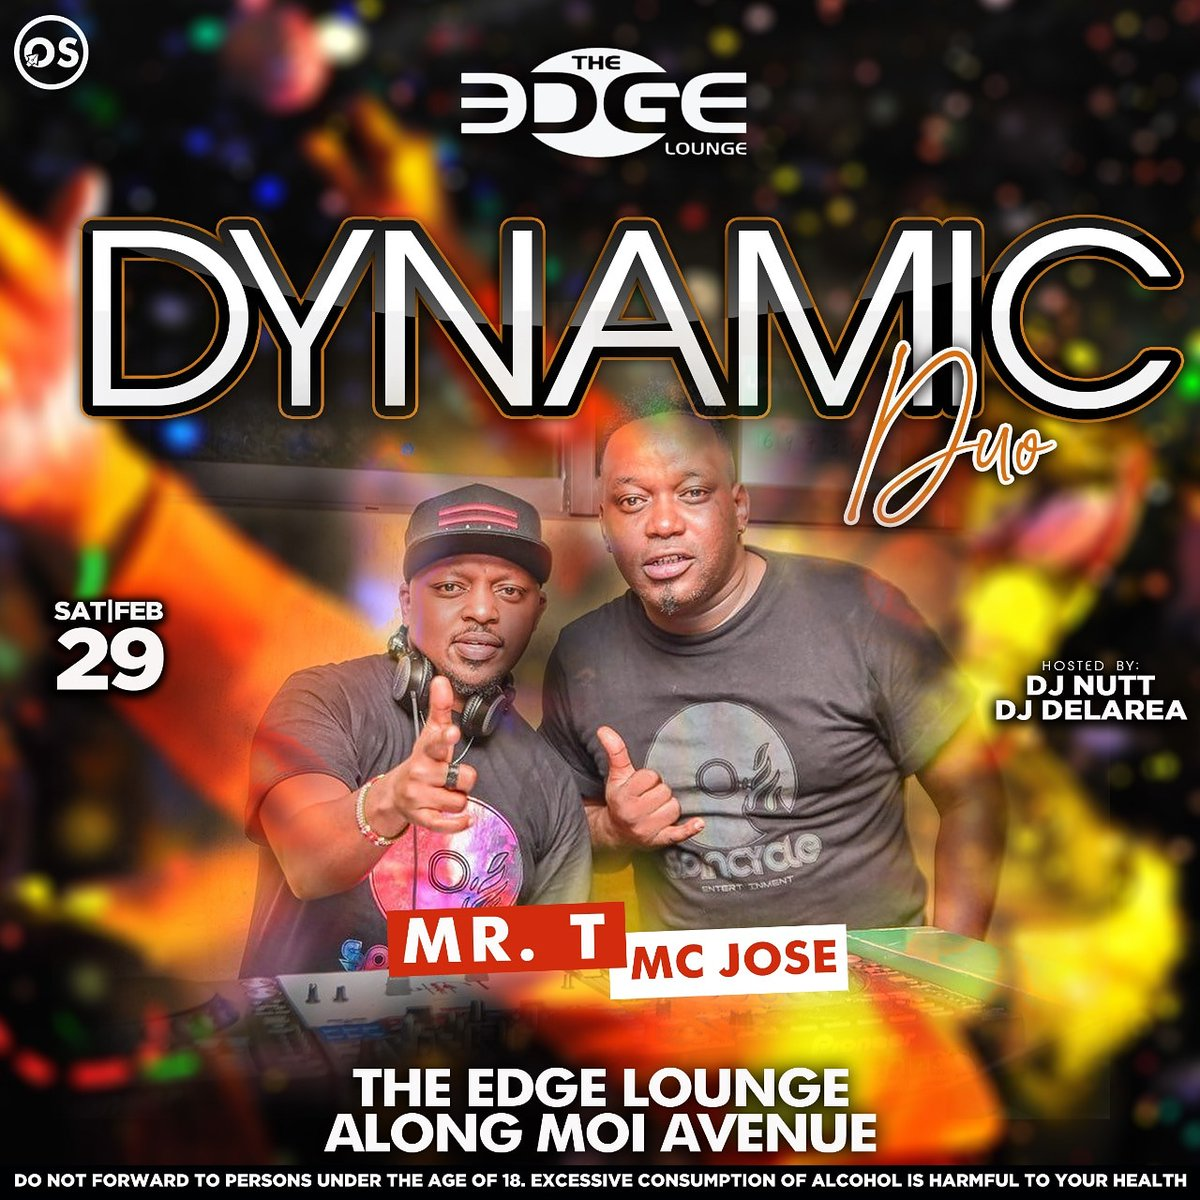 #dynamicduo the party is gonna be @tmistah @mcjose254 will turnup the heat... #saturdaze #saturdaynightlive #saturdaymoments #saturdayfeeling #saturdayparty #saturdaynightvibespic.twitter.com/ENVz78jXAk